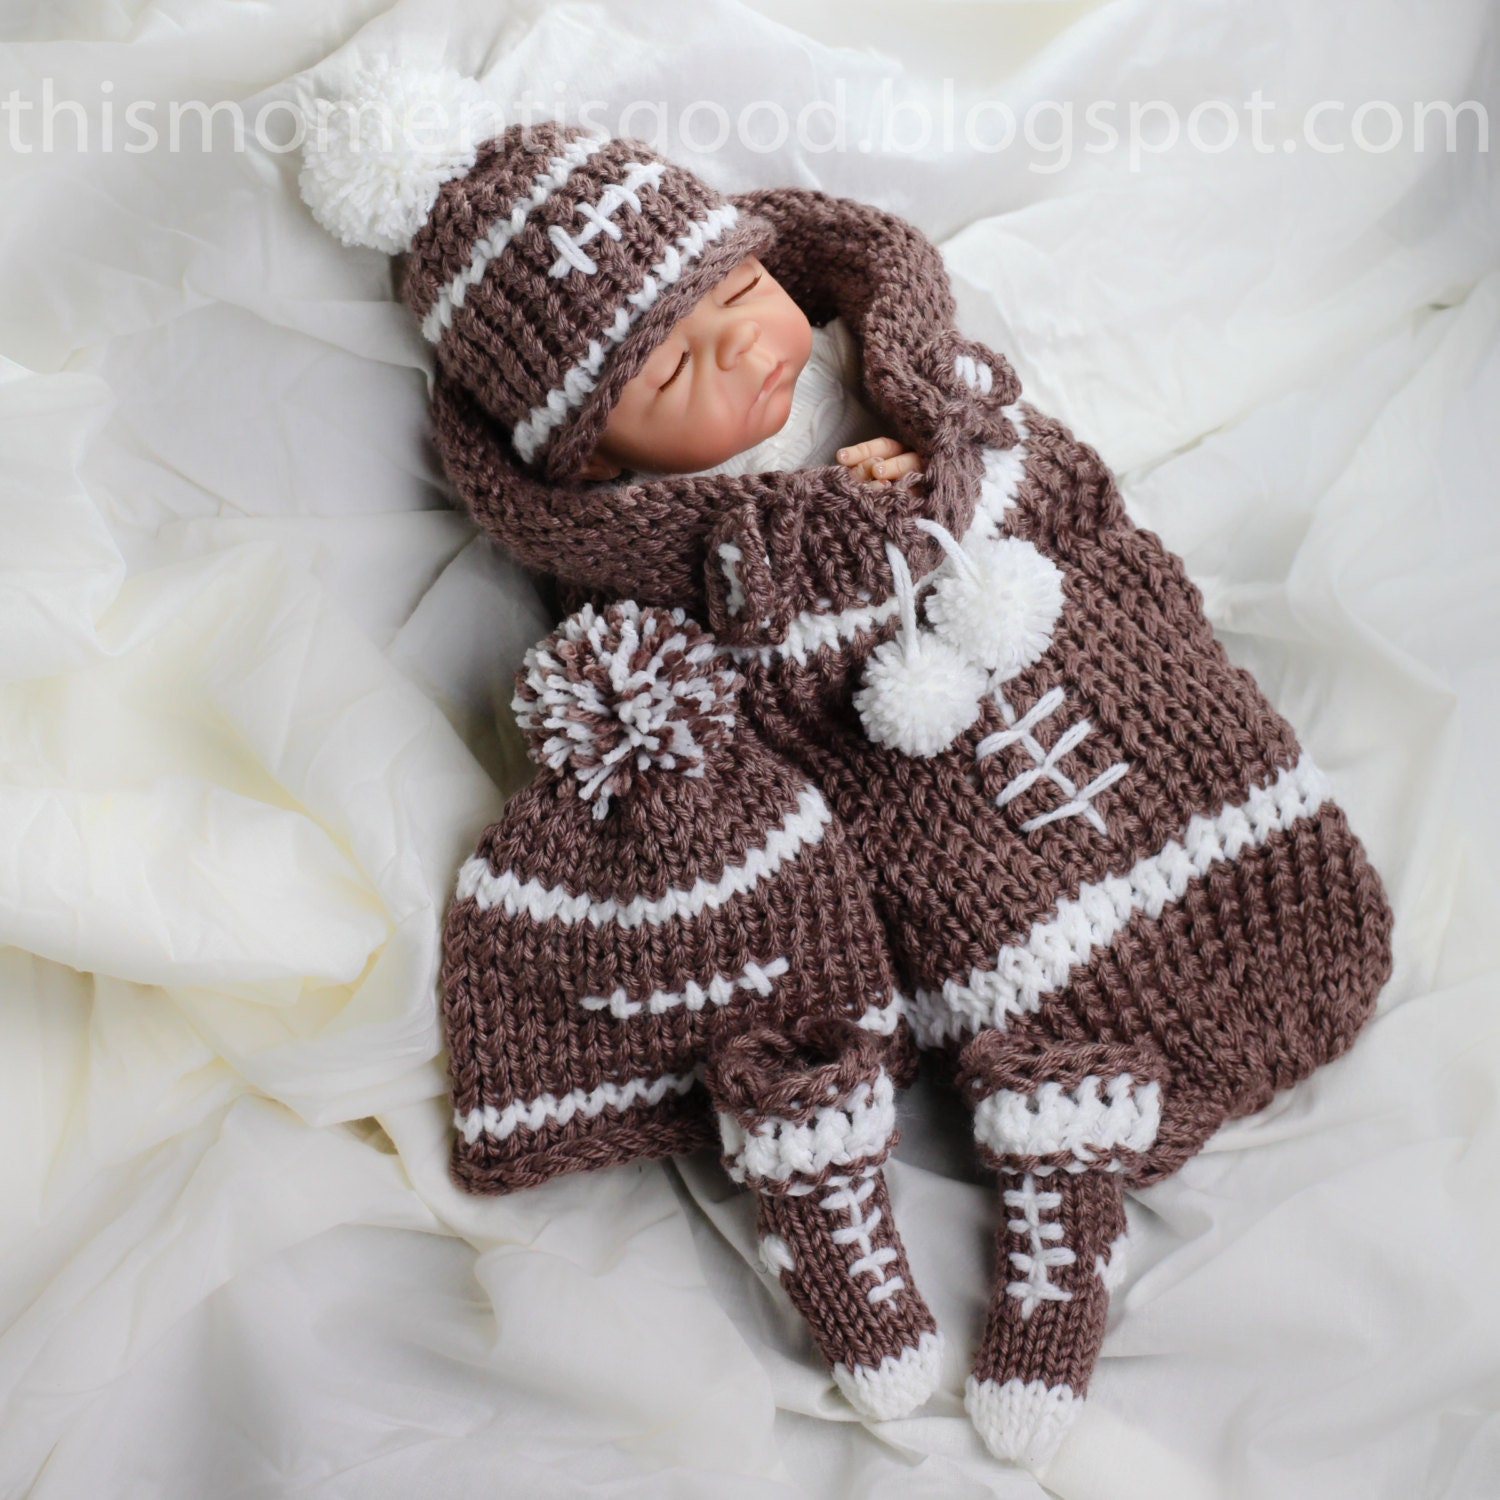 Loom Knit newborn cocoon PATTERN loom knit hat pattern loom